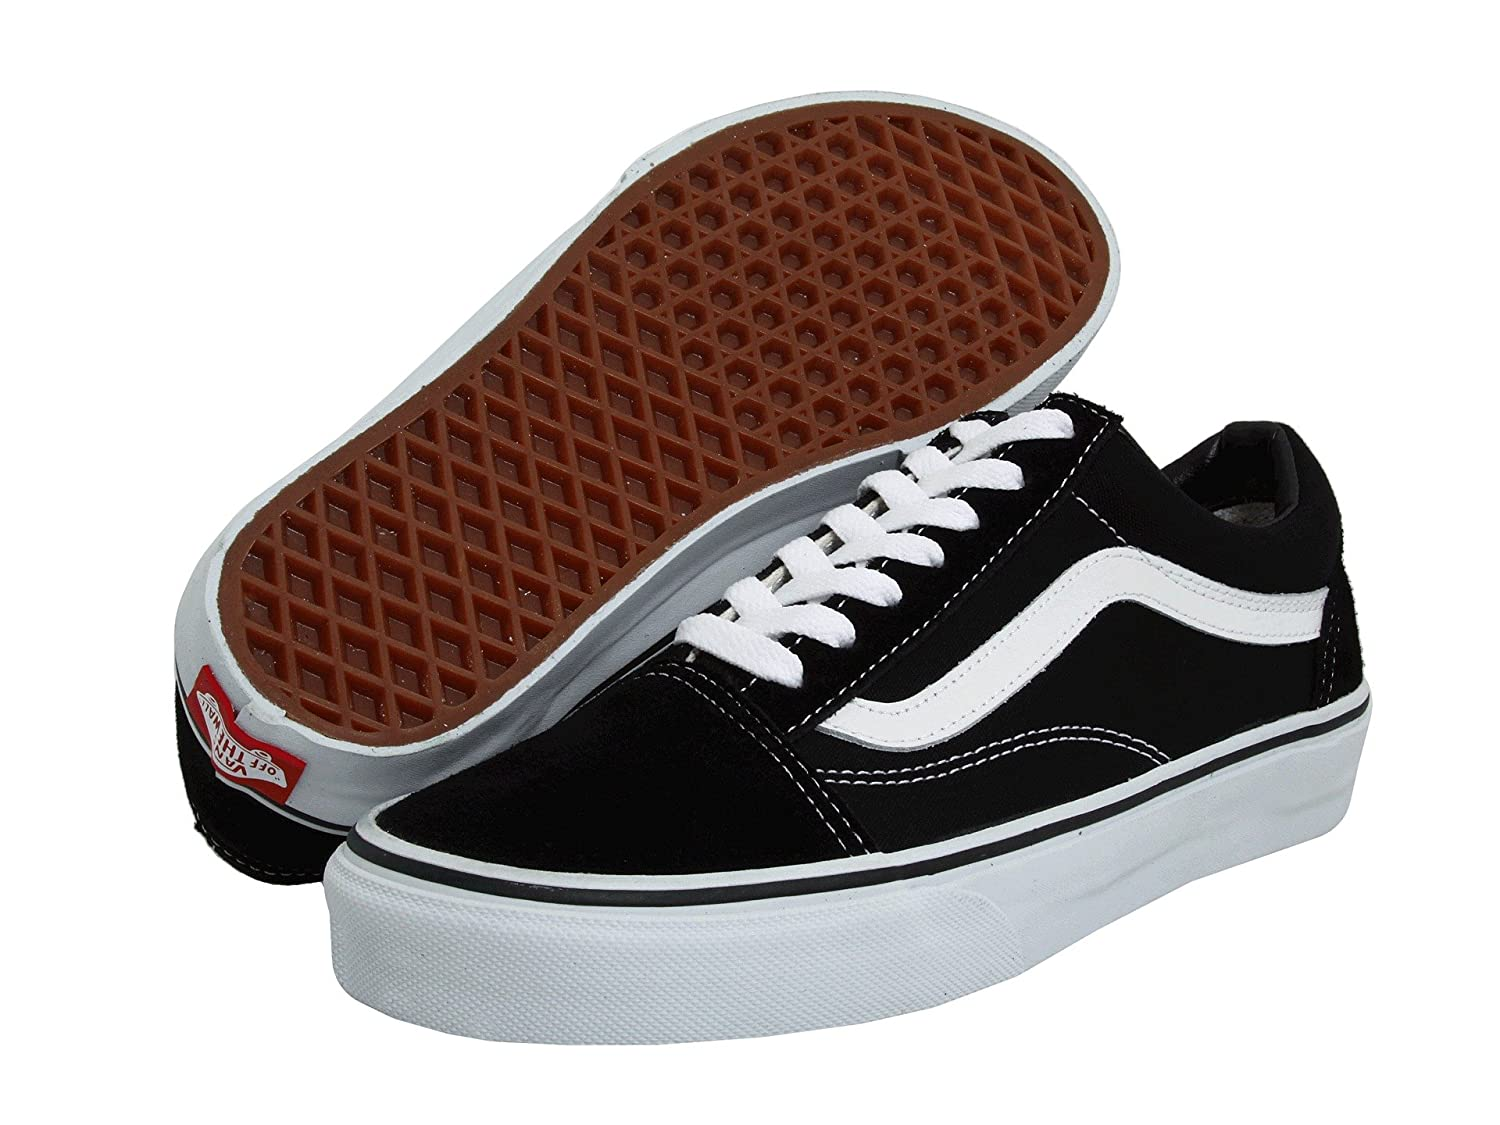 Vans Unisex Old Skool Classic Skate Shoes B0795BHTJM 7.5 M US Women / 6 M US Men|(Suede) Black/White